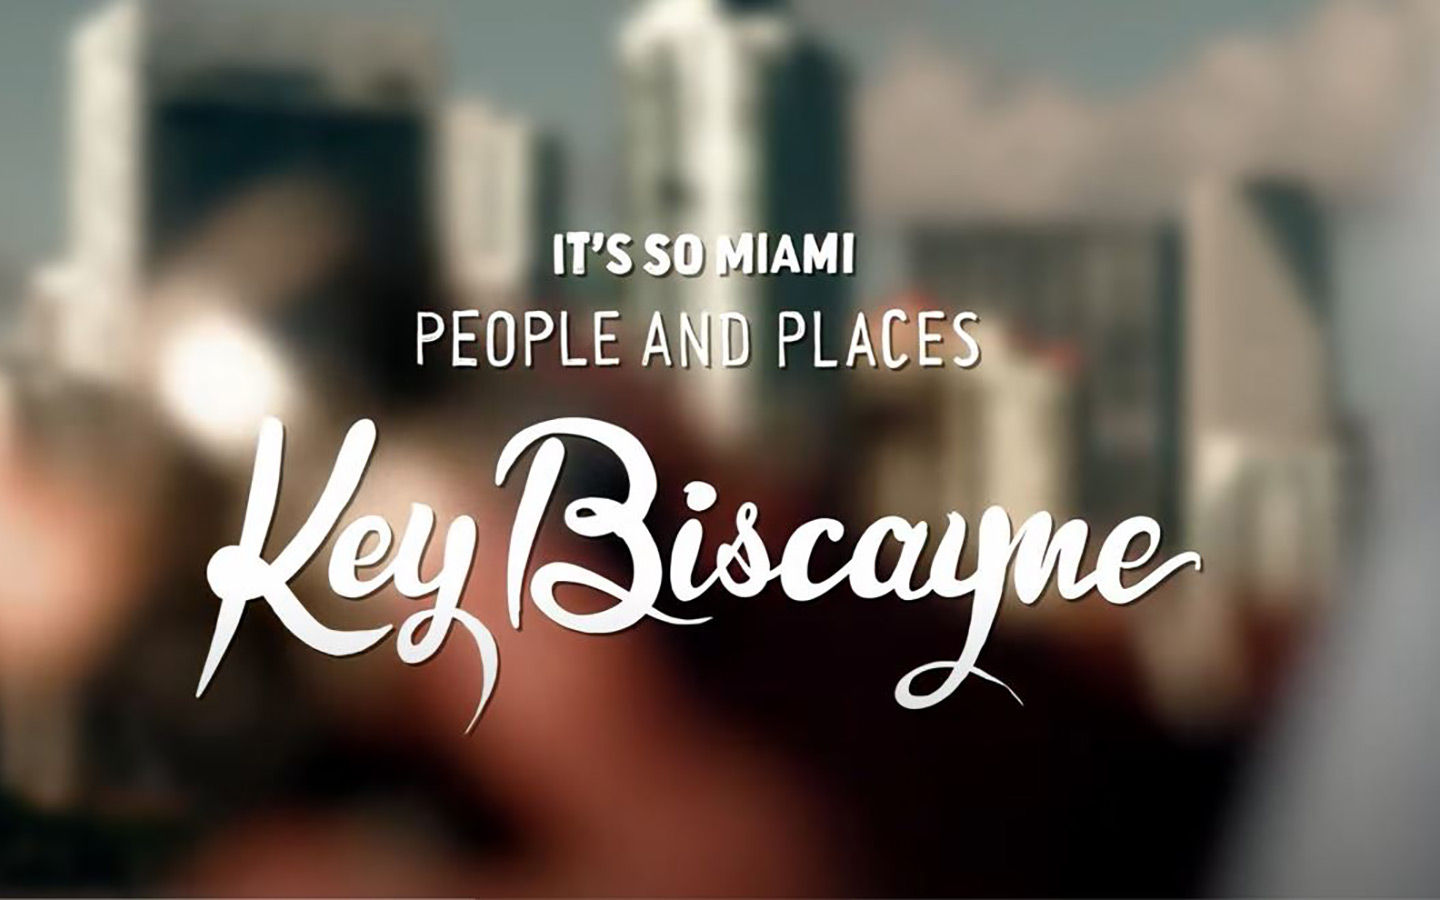 It's So Miami: Key Biscayne